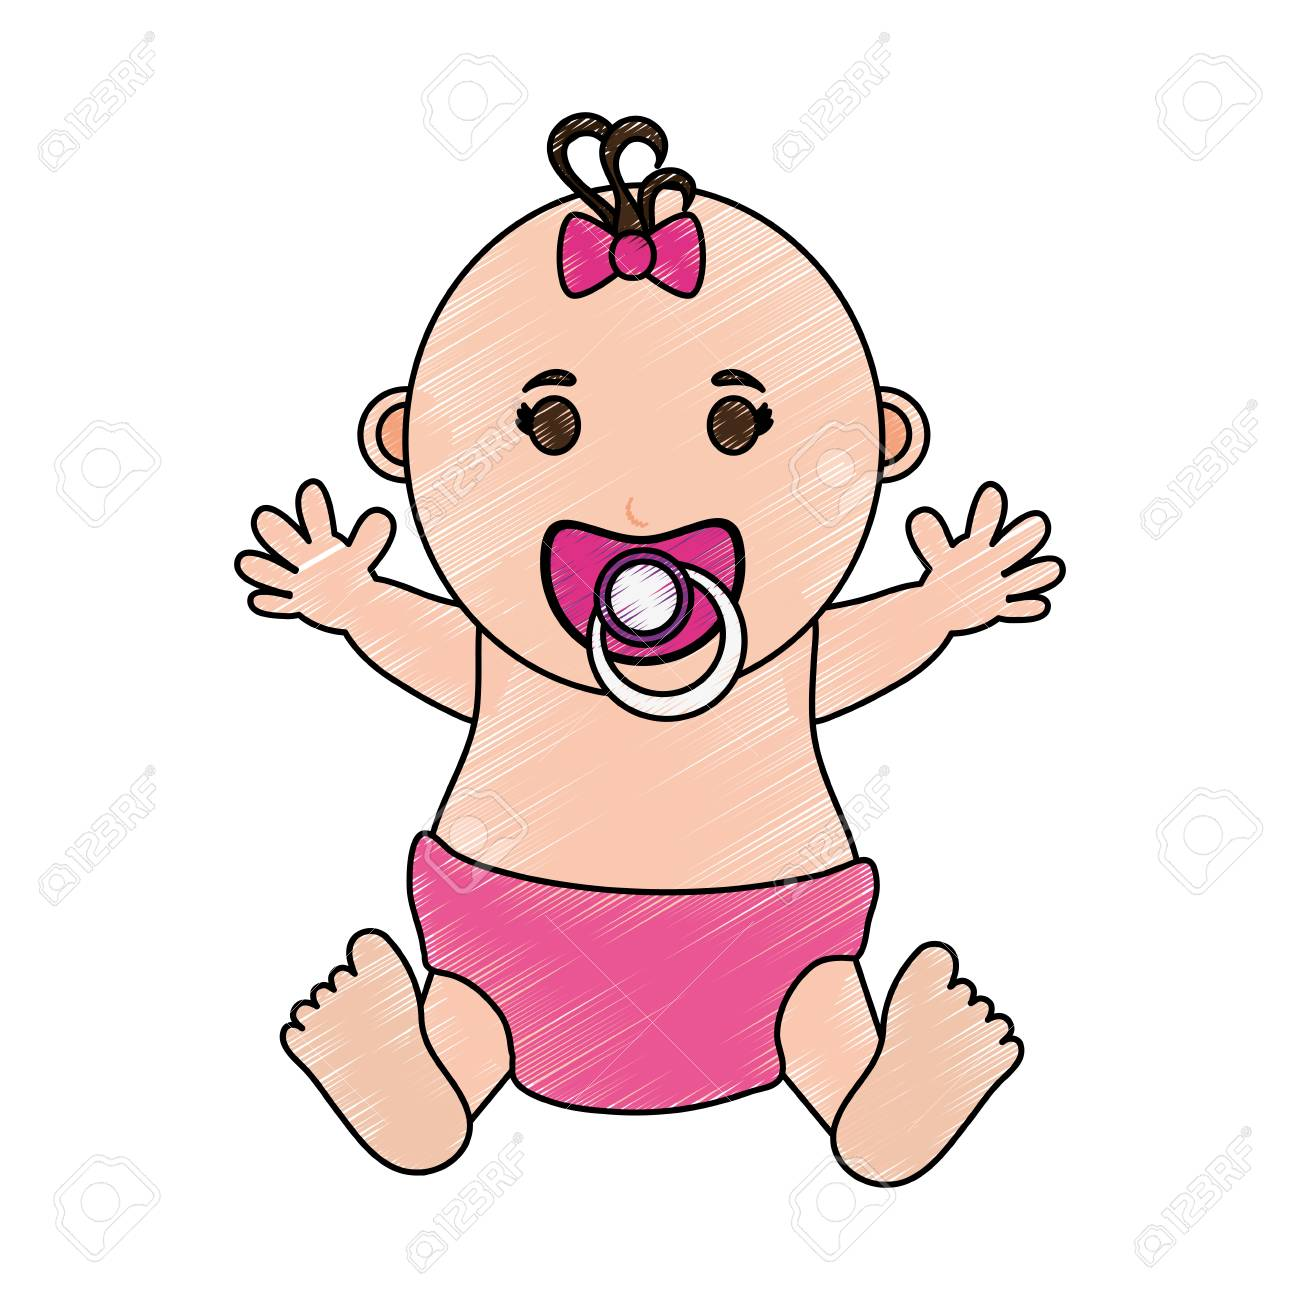 Baby girl illustration icon vector design graphic sketch stock vector 80022031